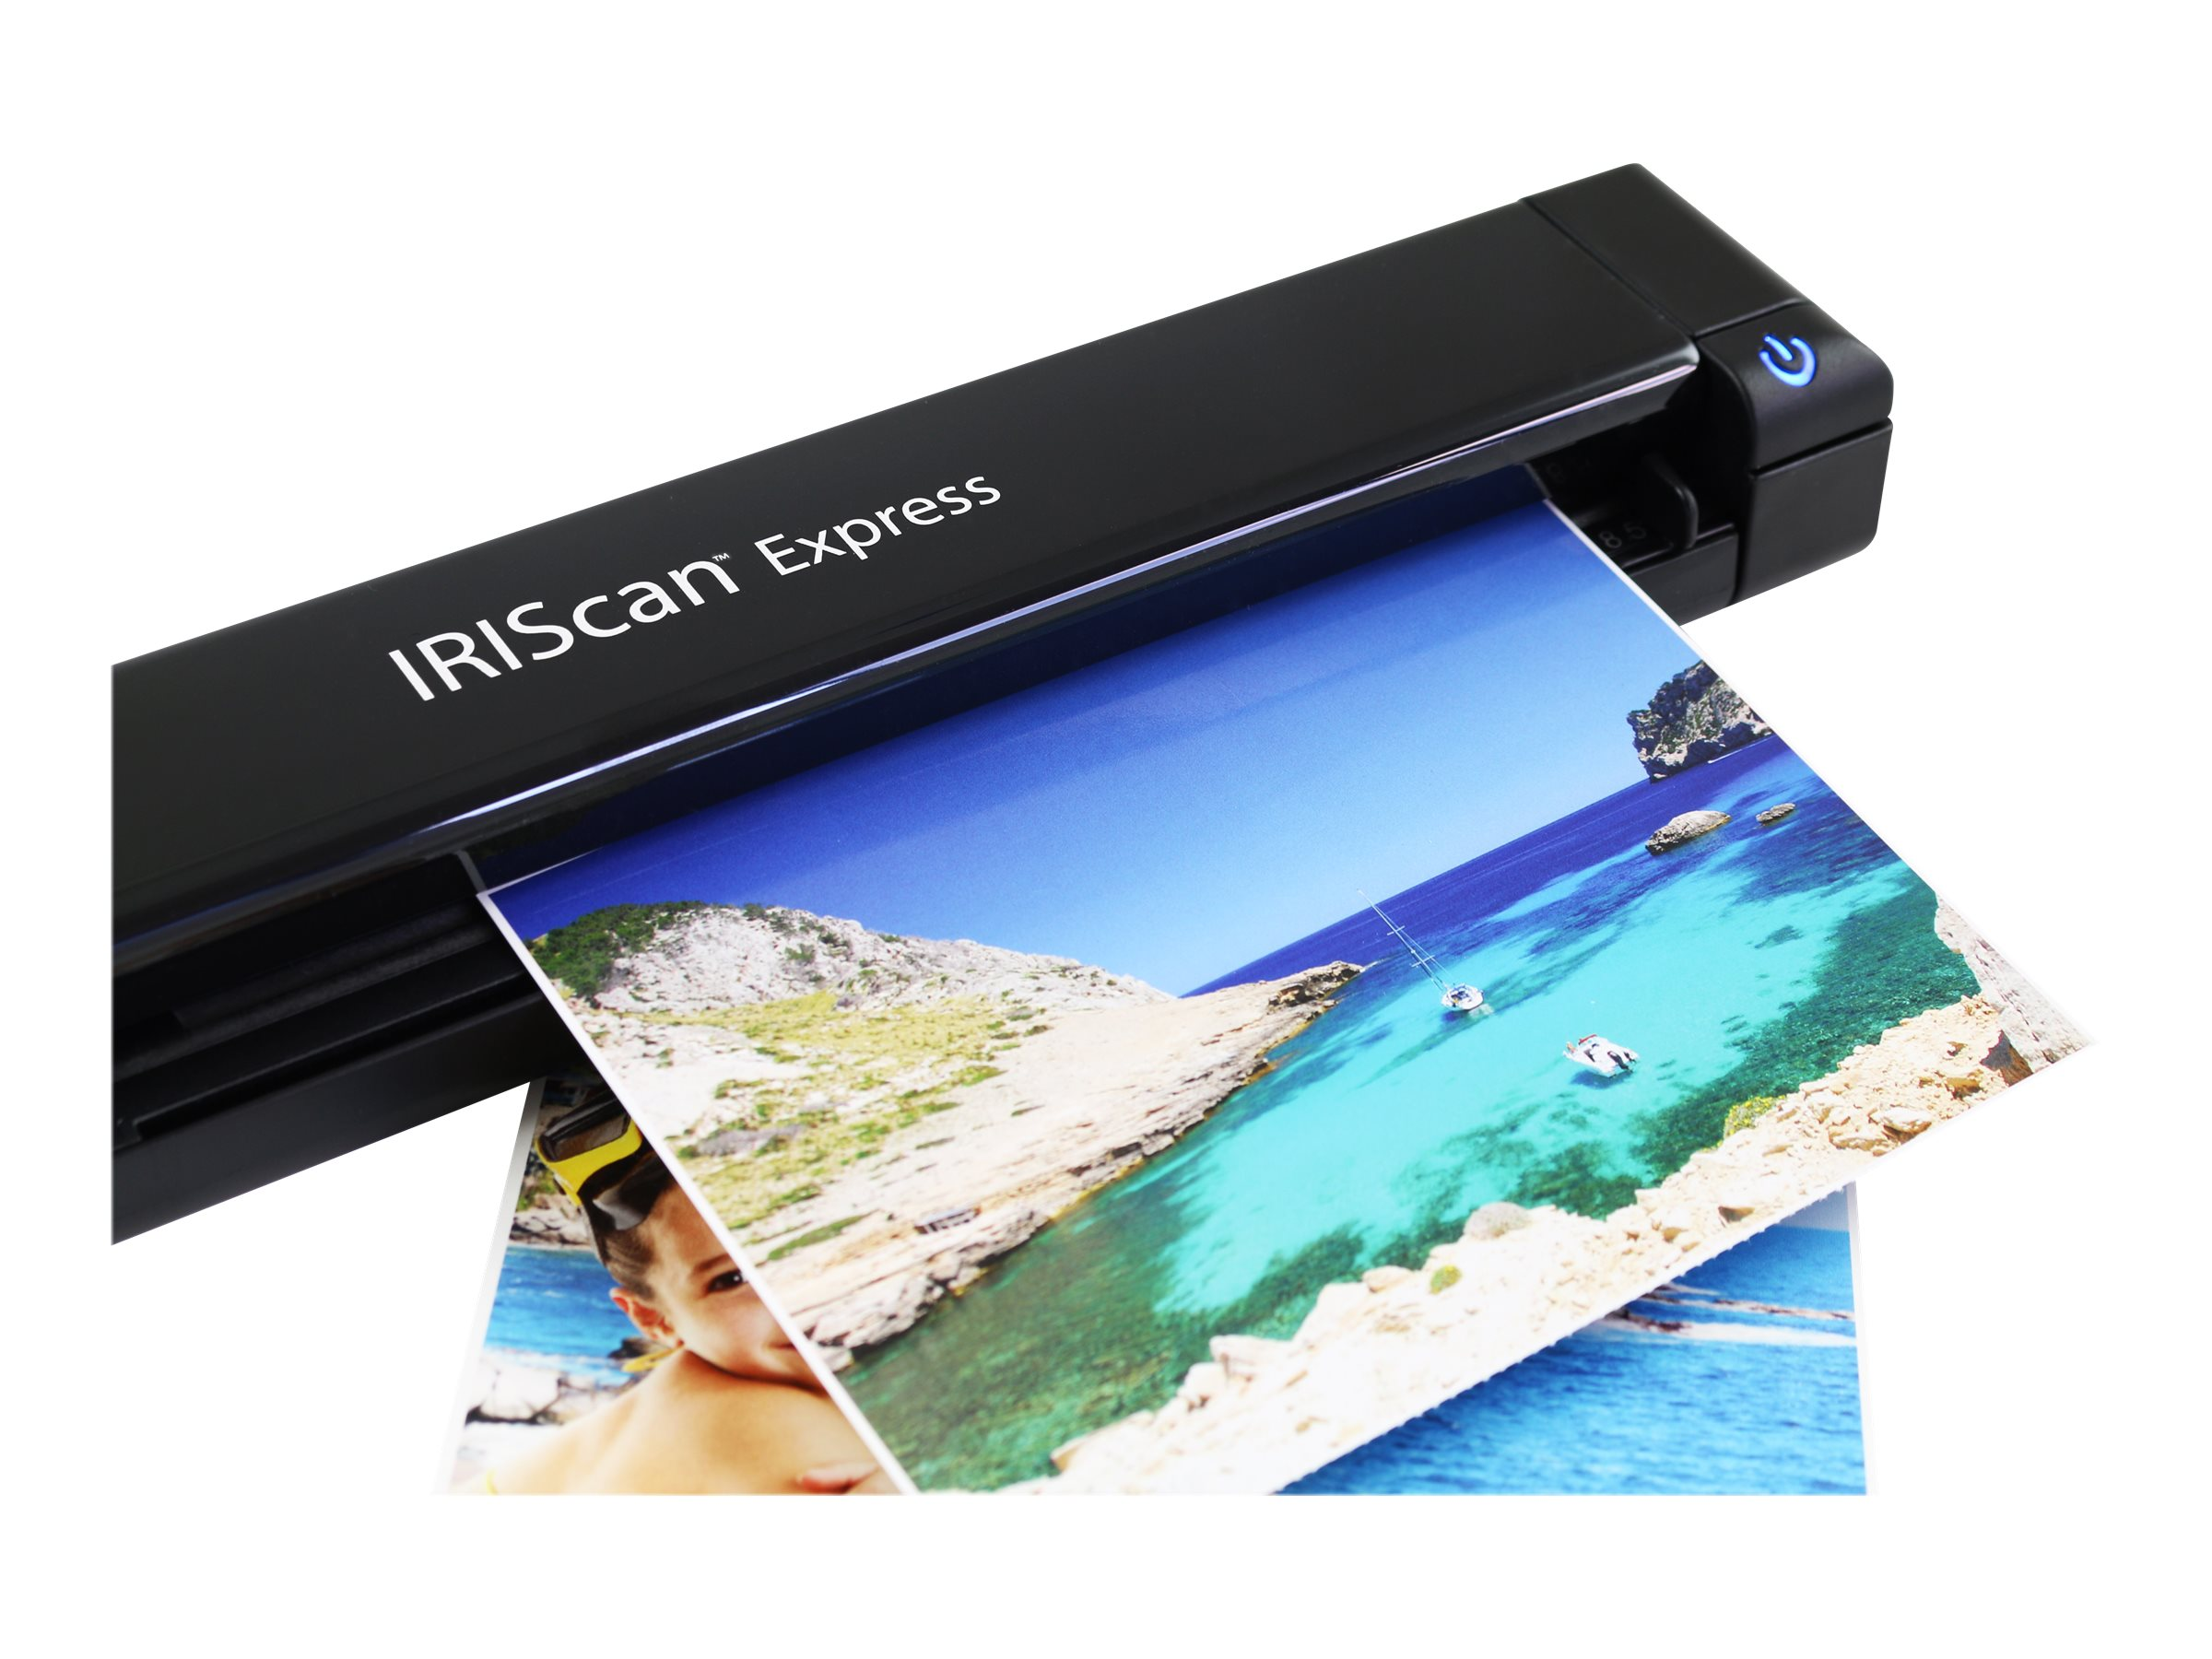 IRIS Iriscan Express 4 Portable Sheetfed USB Scanner, 458510